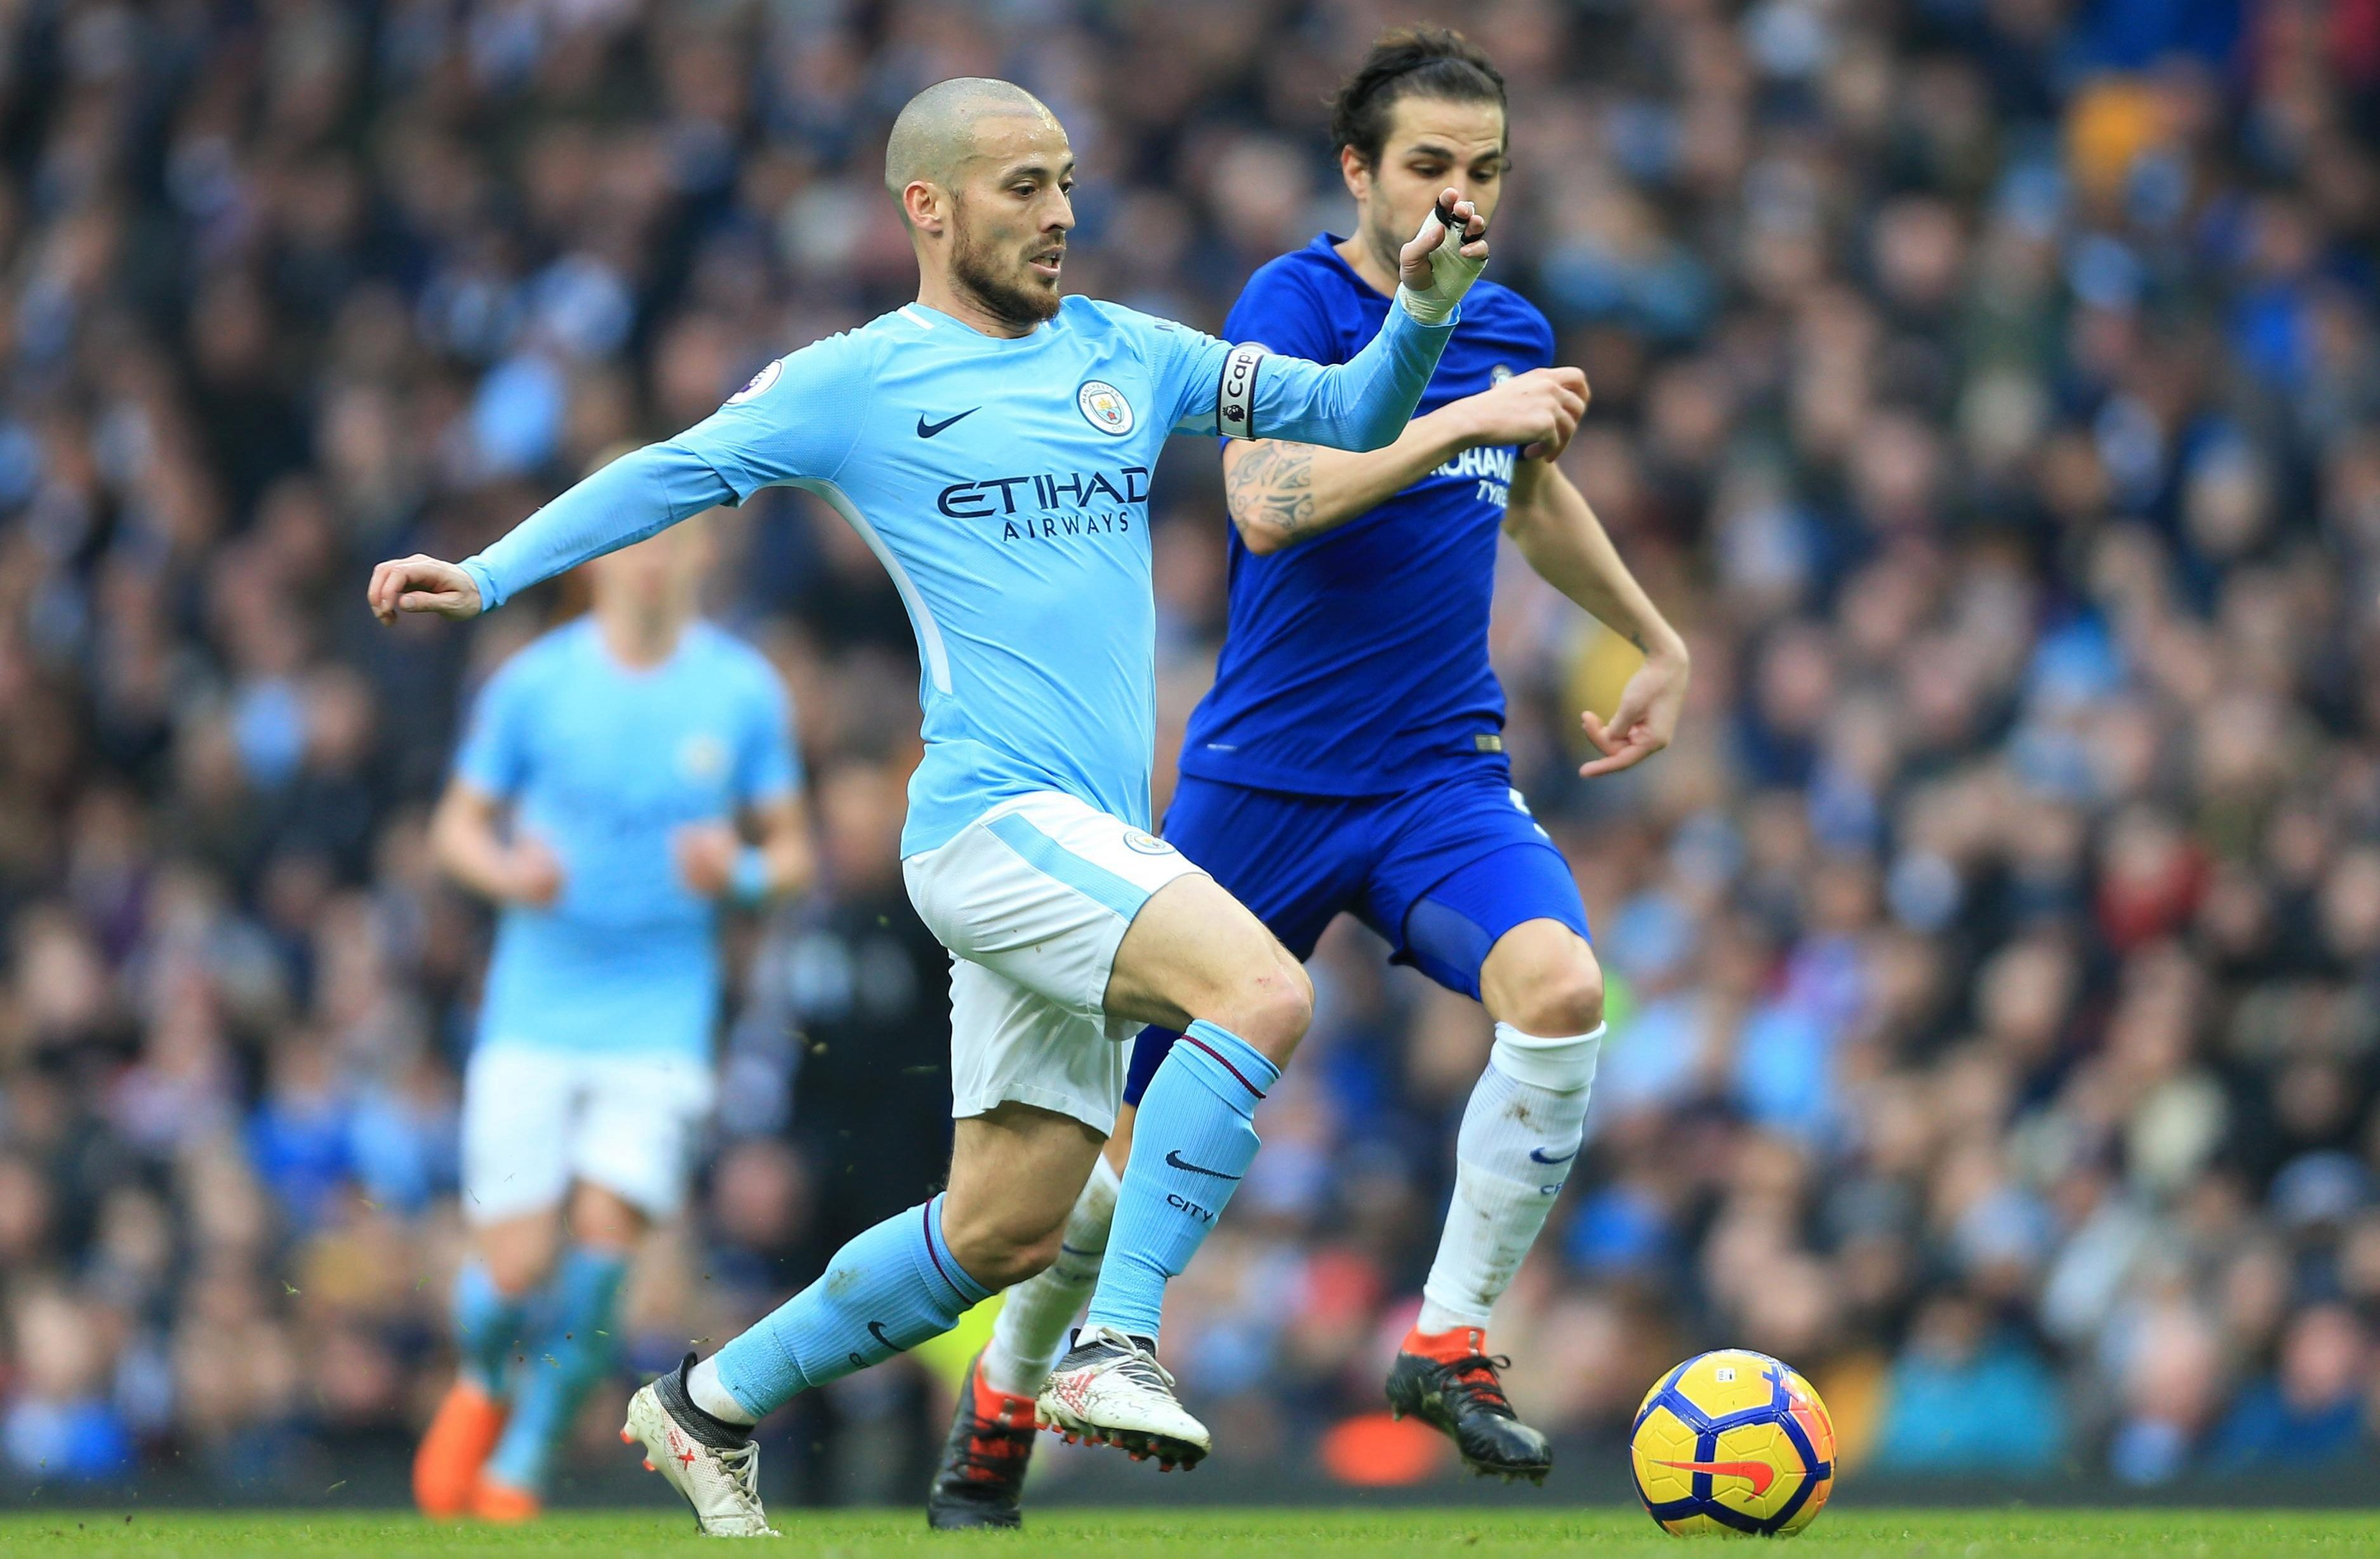 Fabregas should be mentioned in the same breath as countryman David Silva